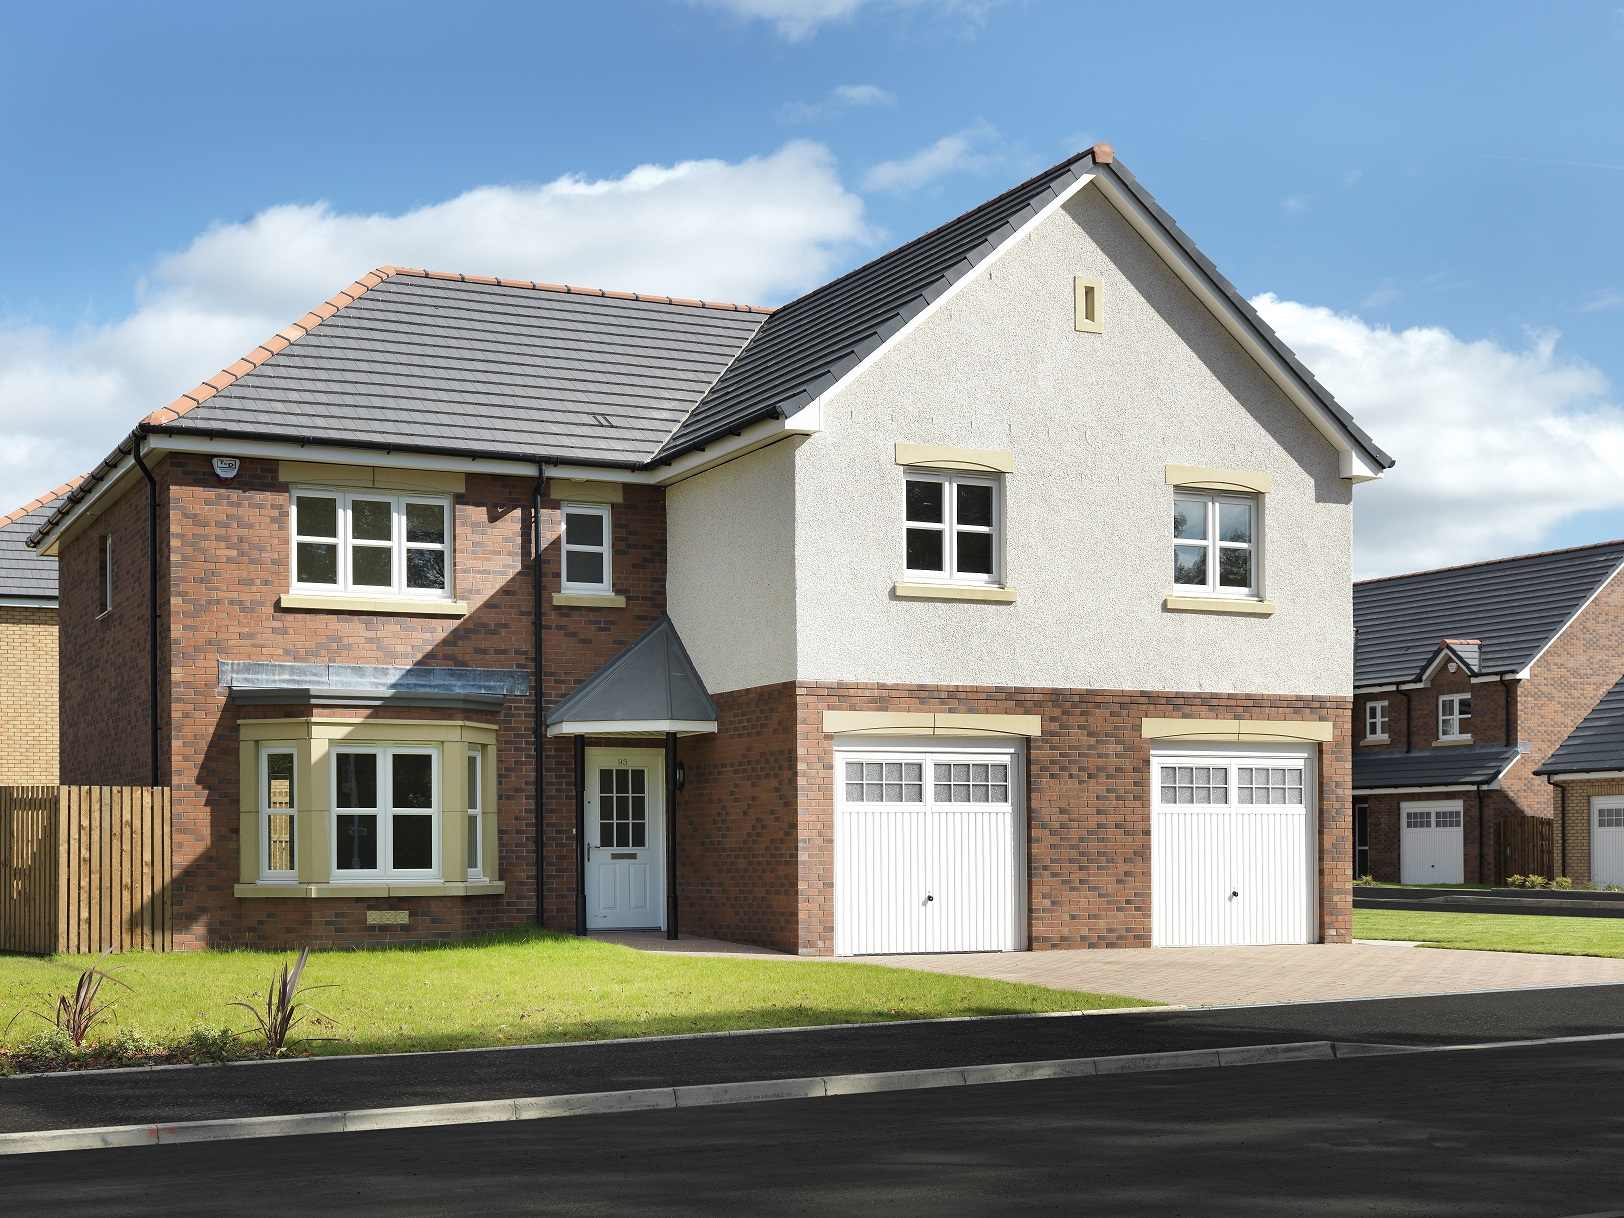 Miller homes to build another 205 homes in scotland for Builders to build a house